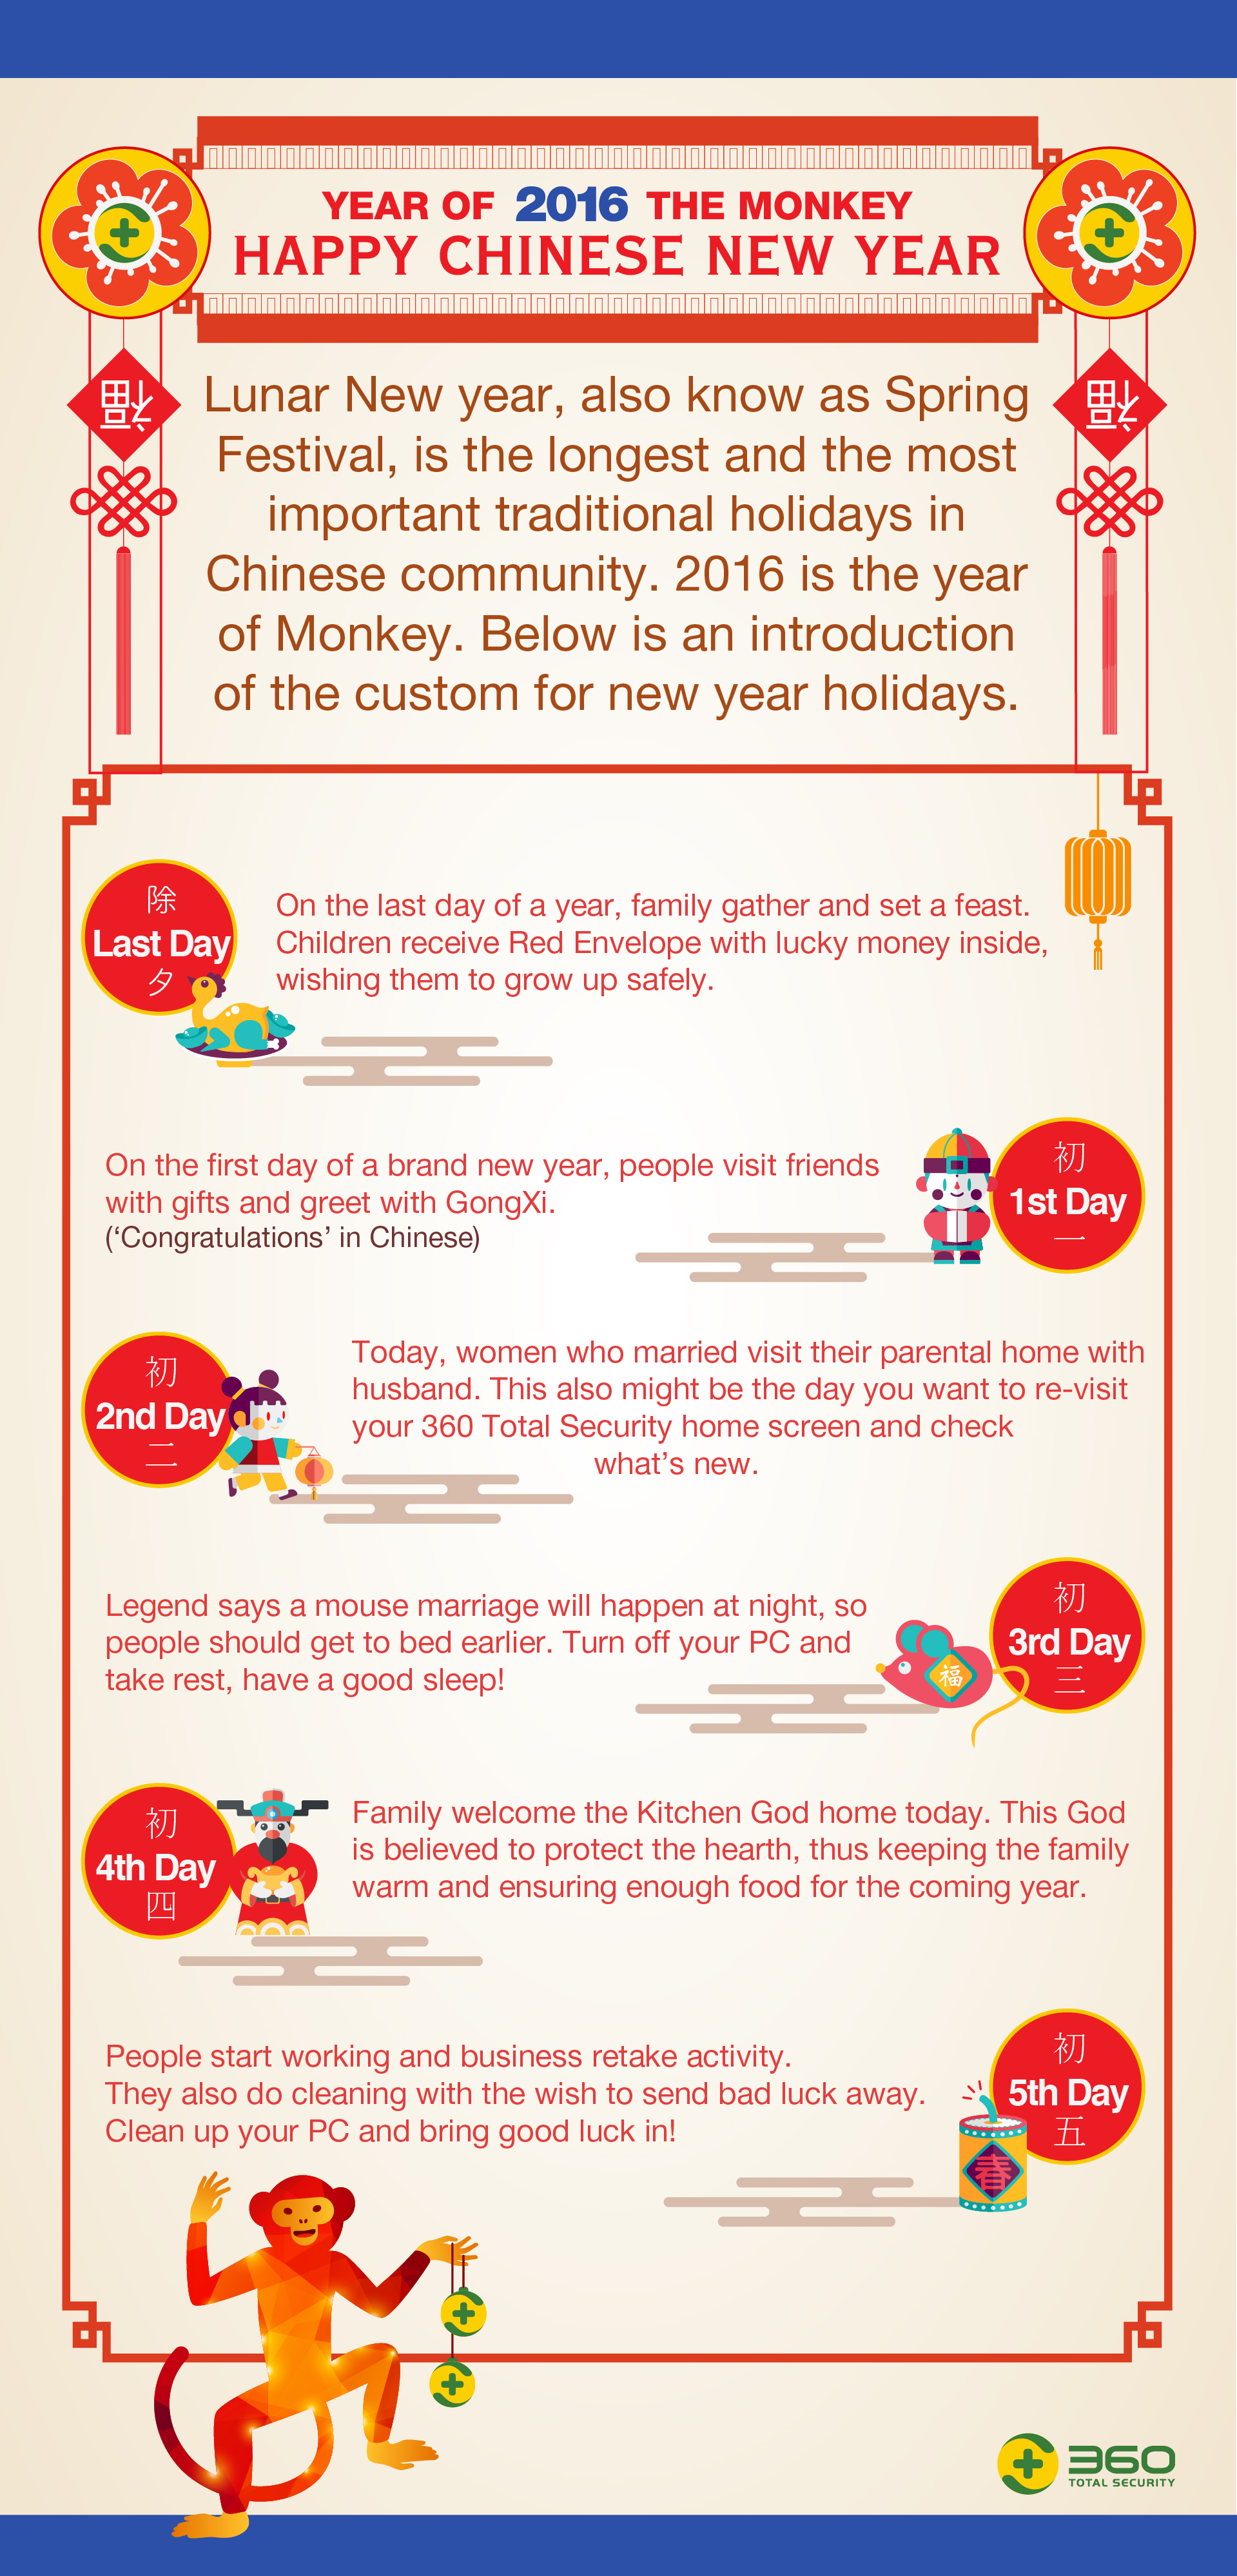 Chinese New Year Tradition Infographic | 360 Total Security Blog